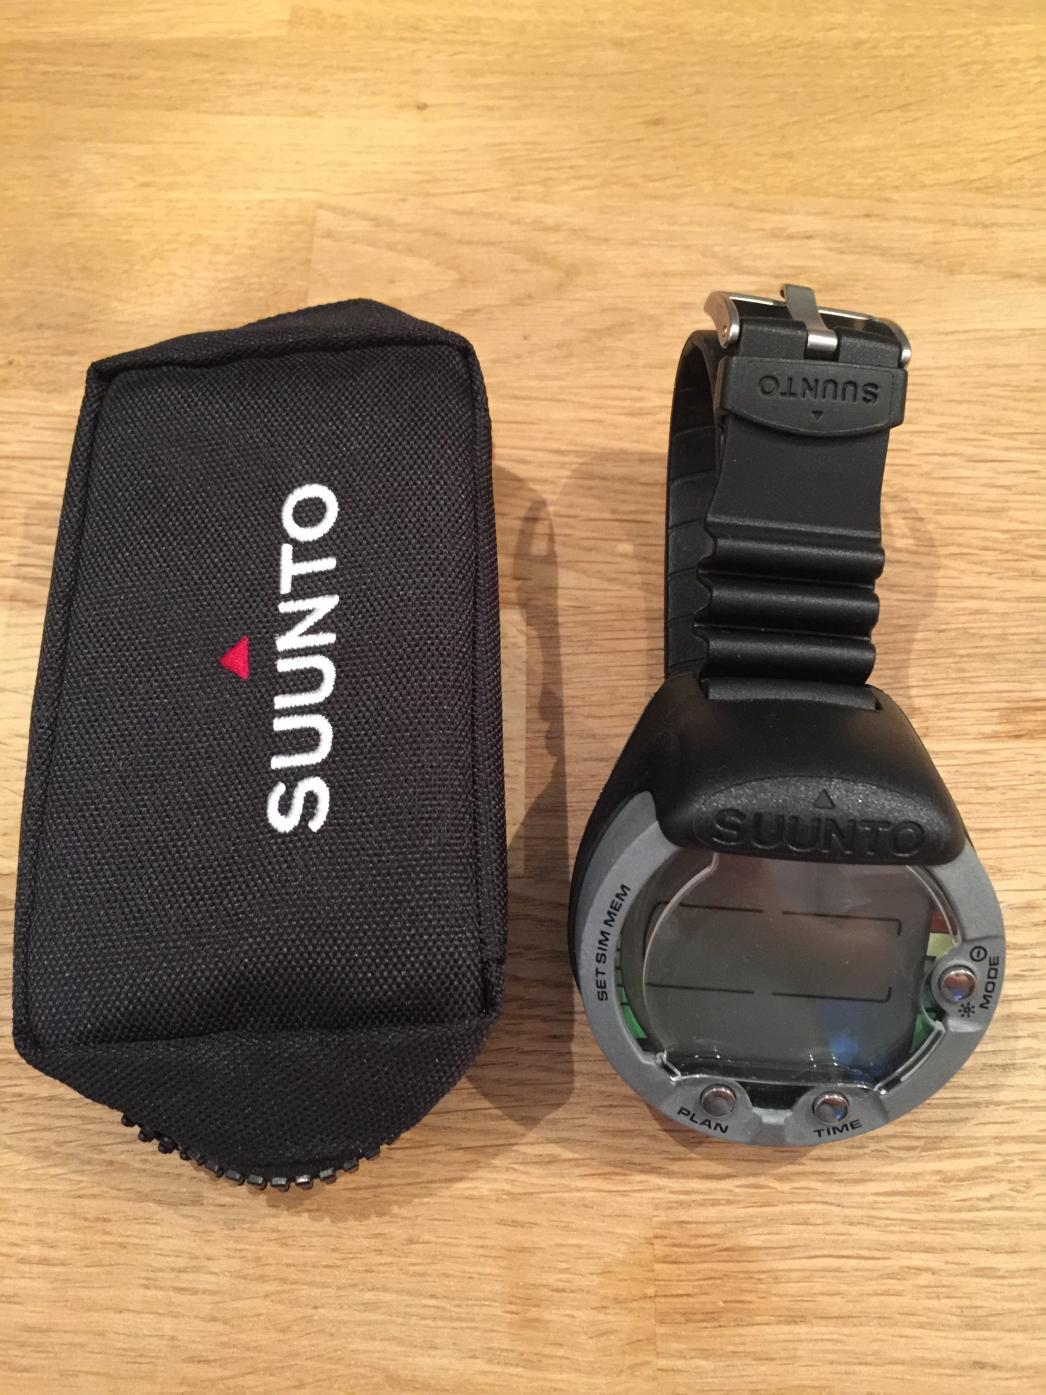 Click image for larger version.  Name:suunto.jpg Views:69 Size:193.6 KB ID:49837